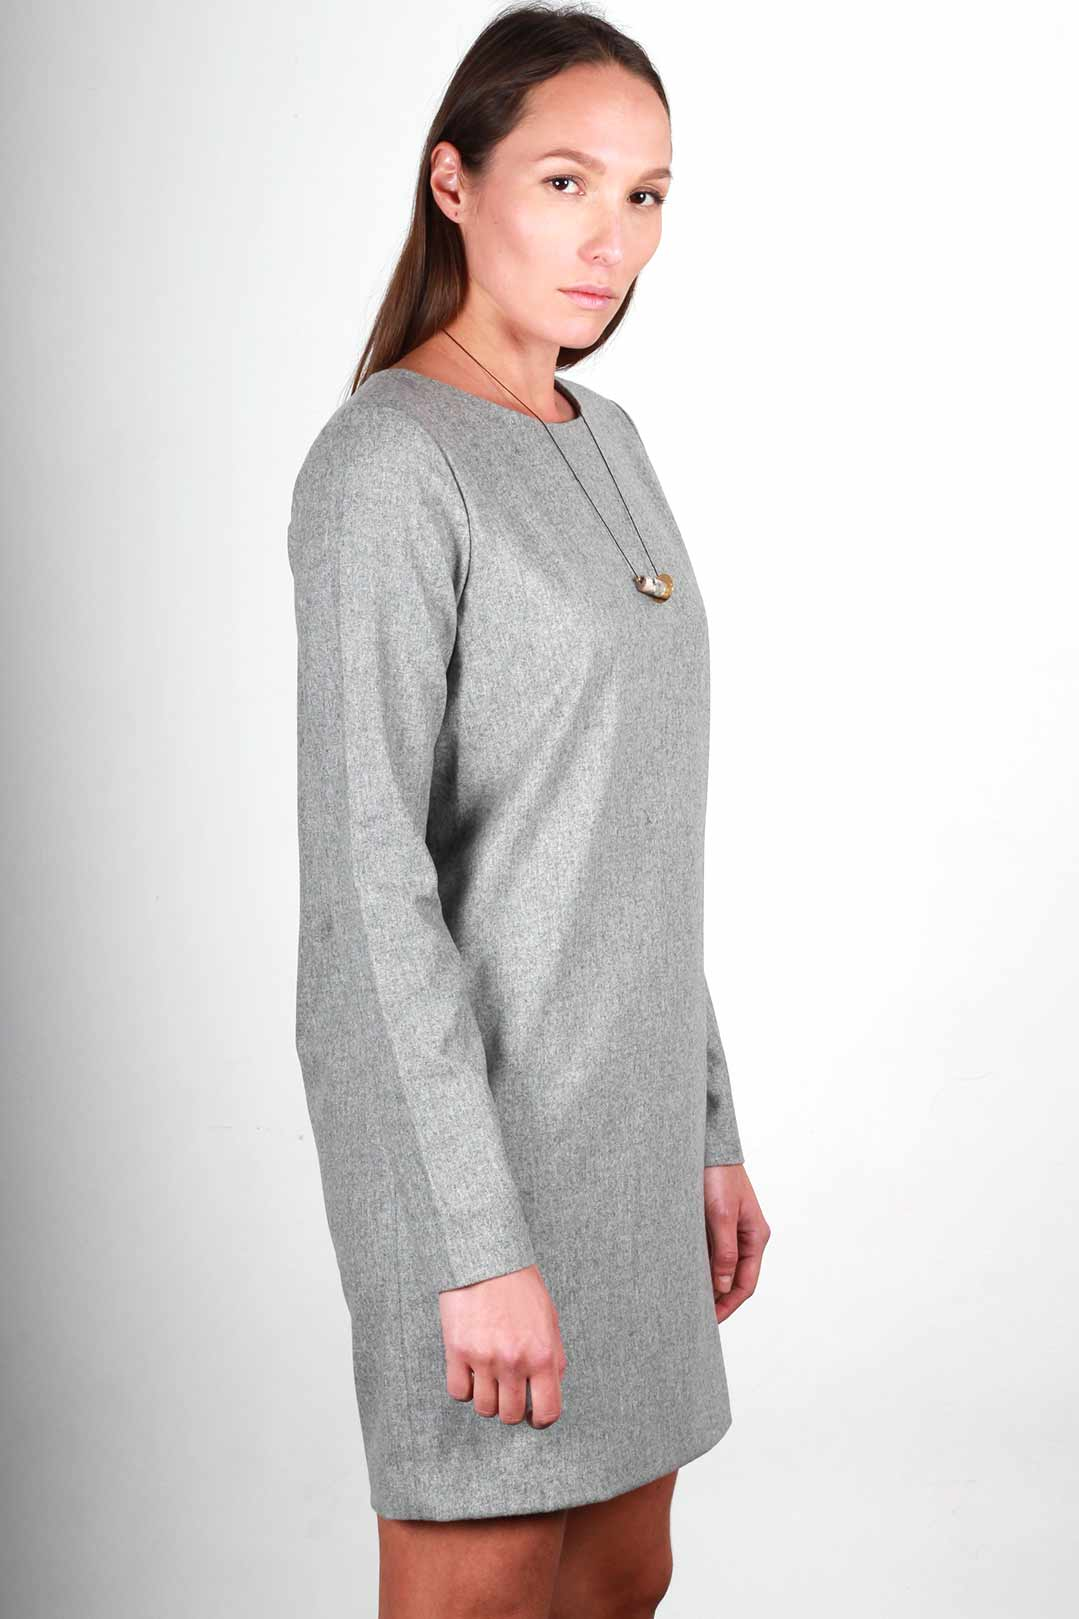 420cb6cce165 ATODE - Robe droite grise en laine flanelle manches longues - Made ...